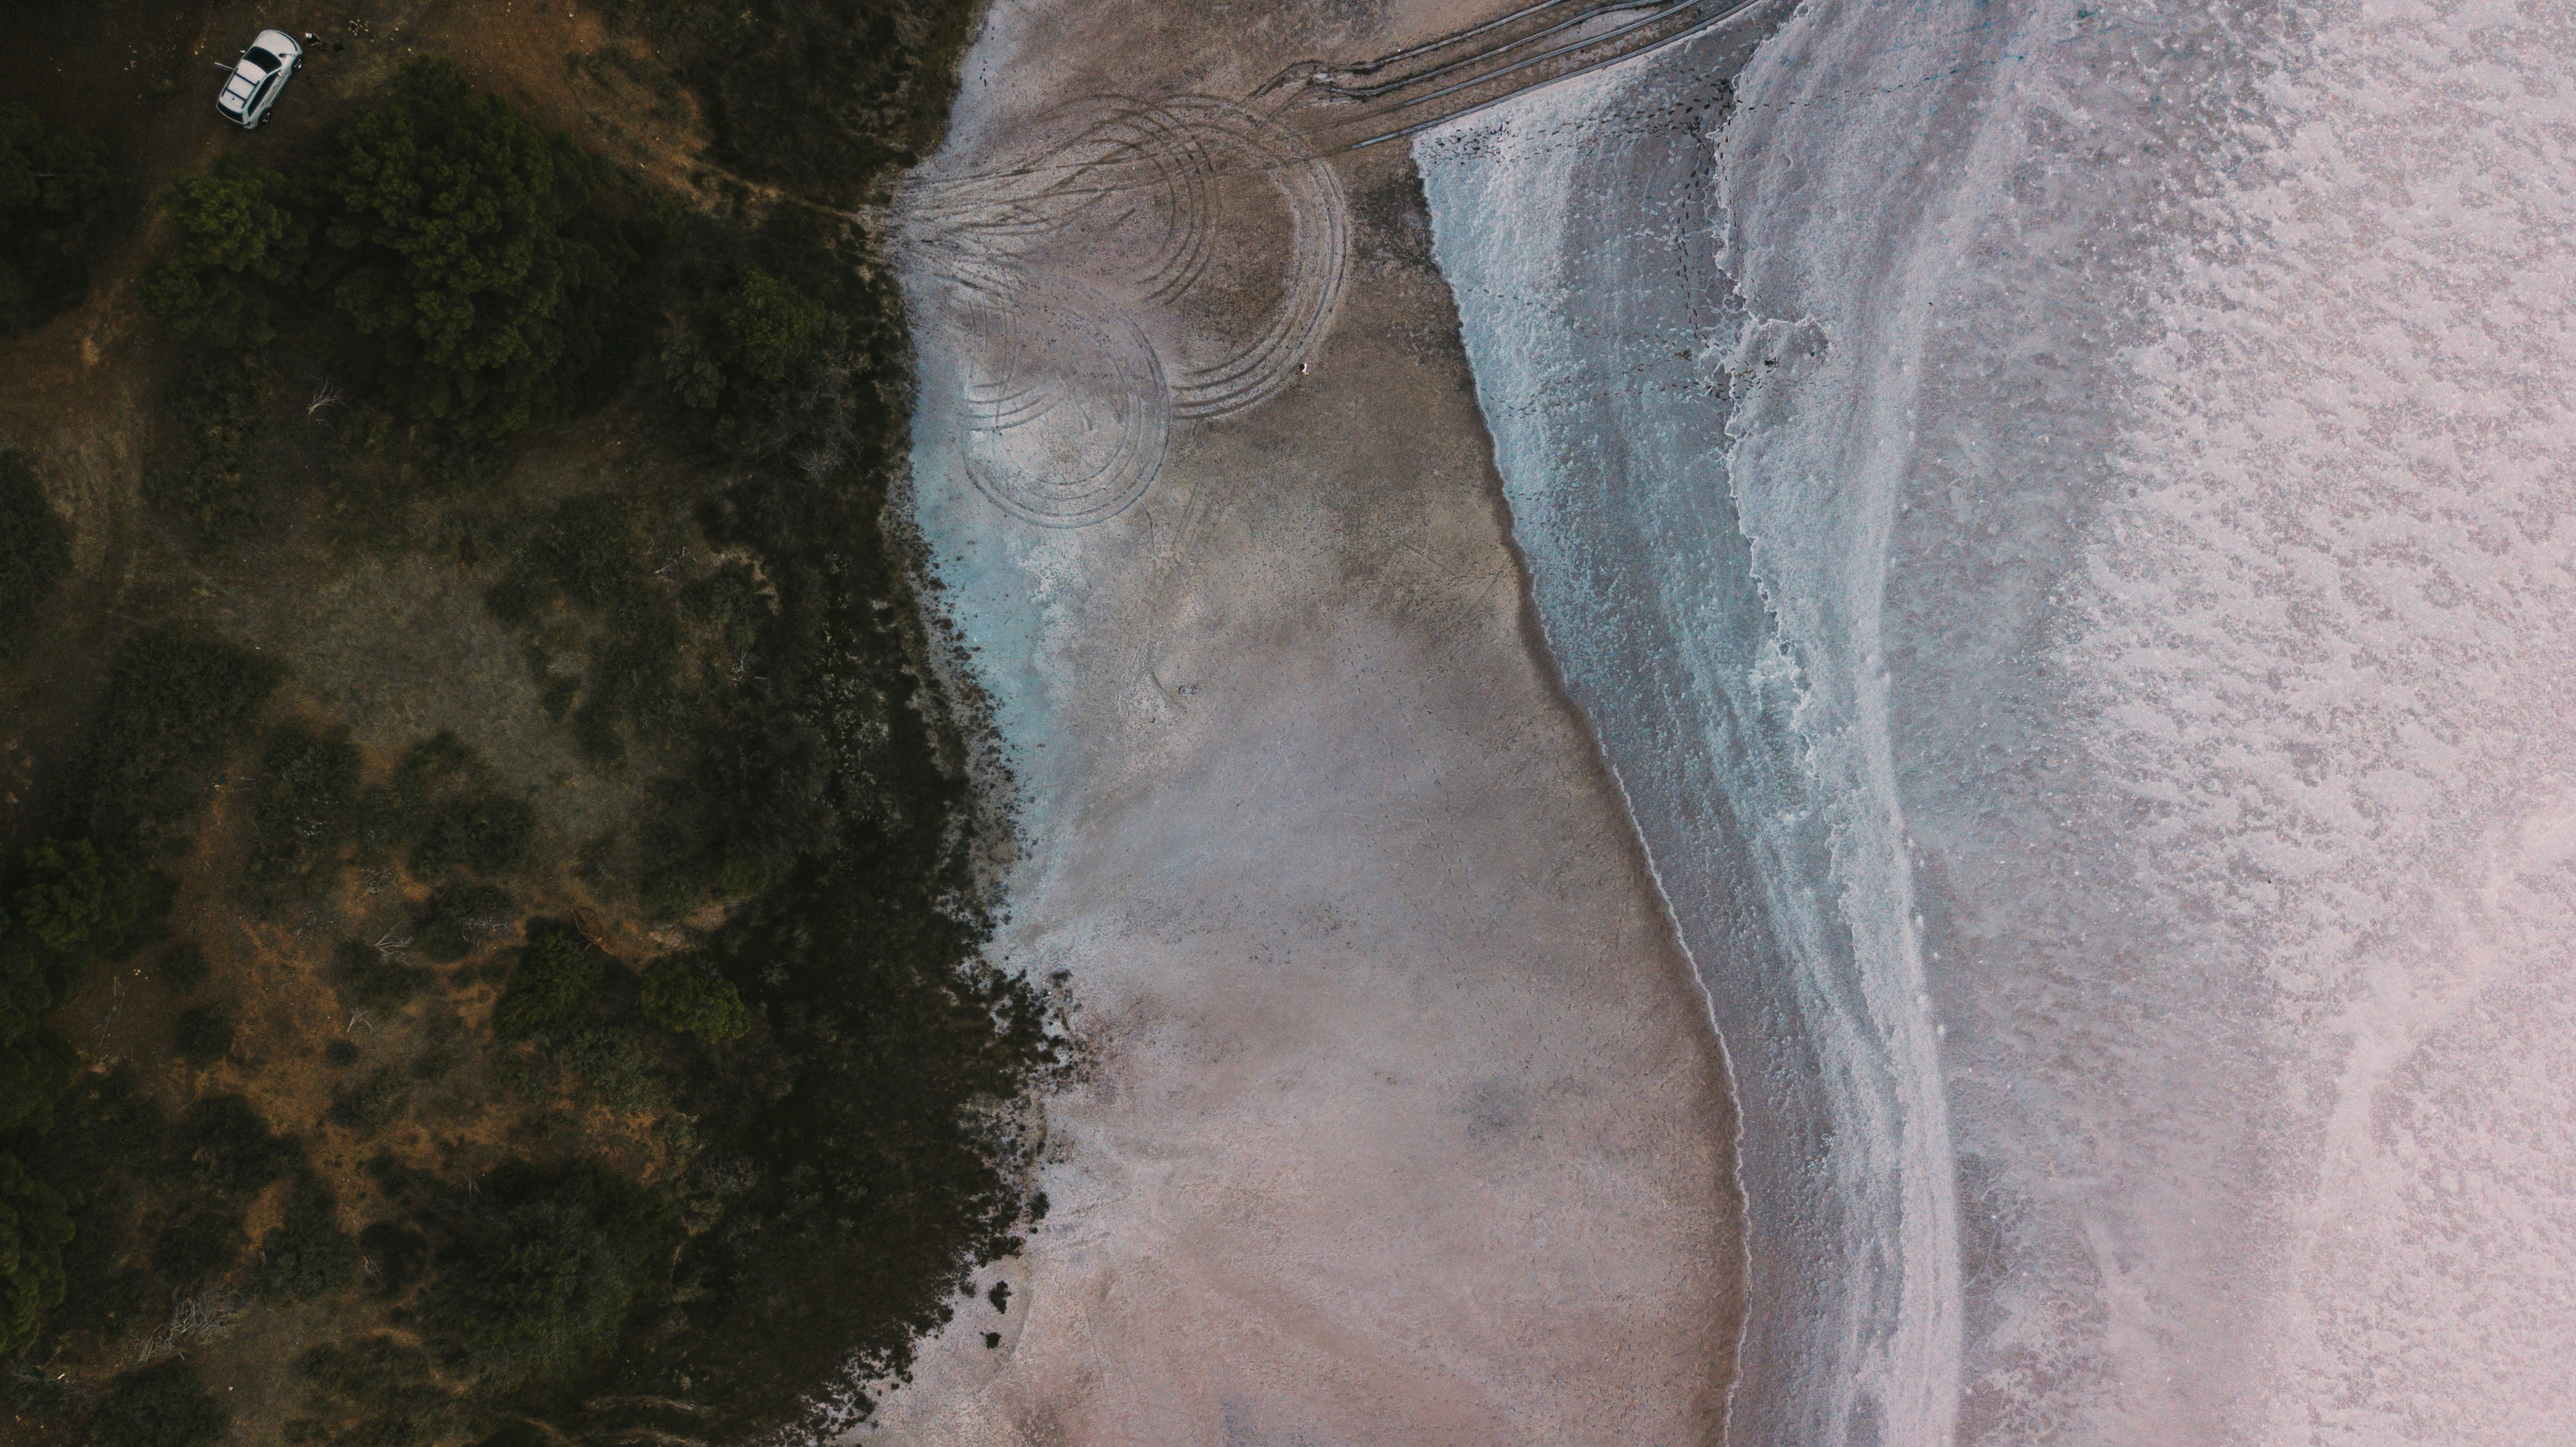 aerial photography of white vehicle running on rough road near shore